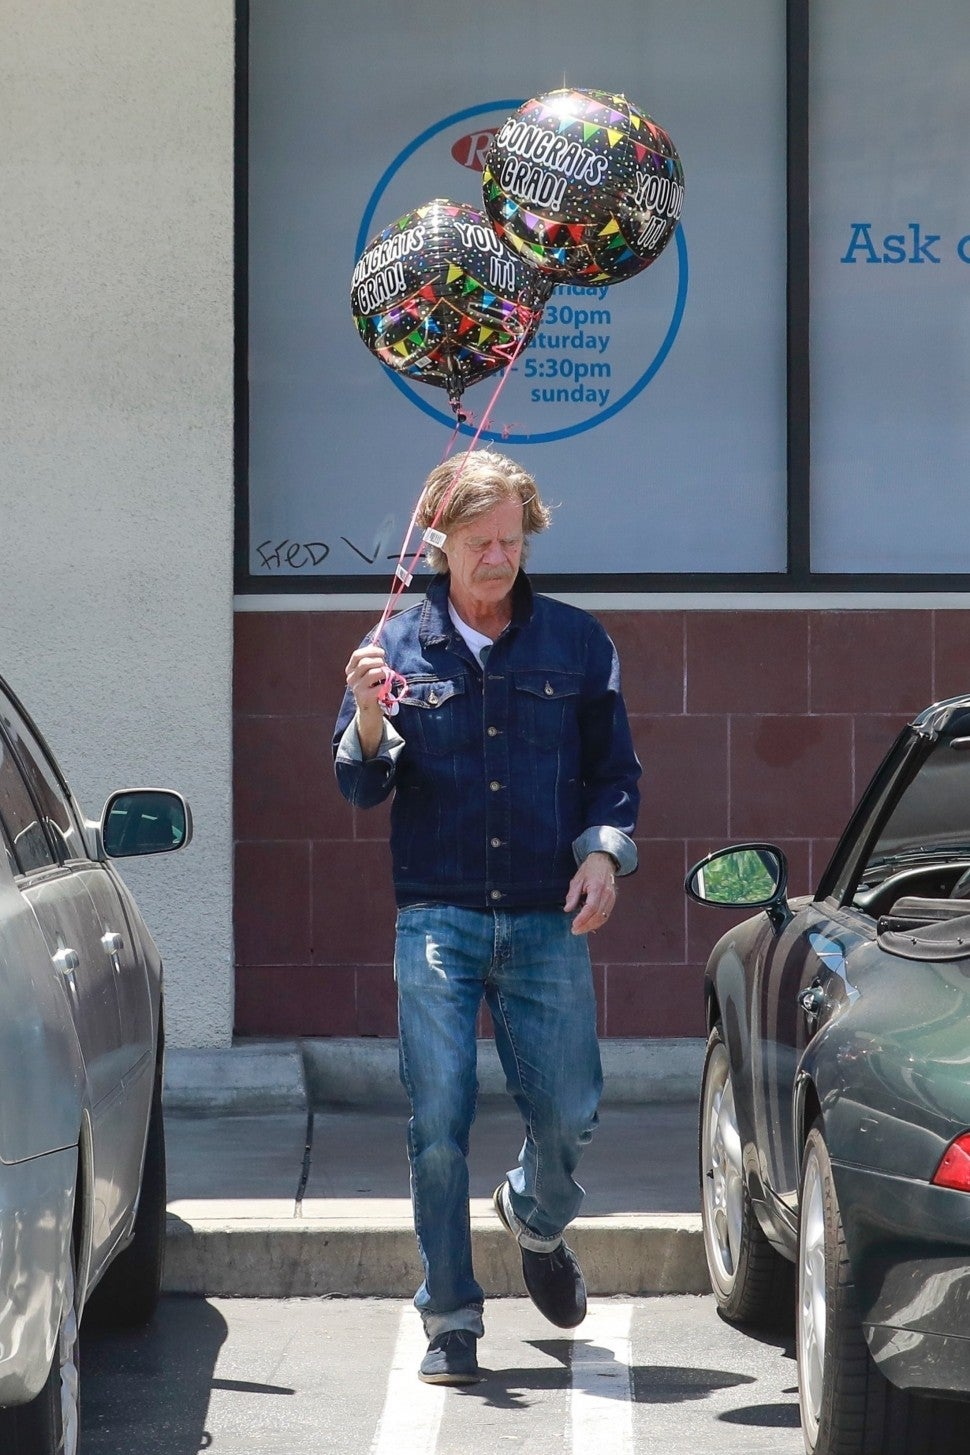 William H. Macy spotted gearing up for a graduation celebration while picking up balloons and a cake in Weho.